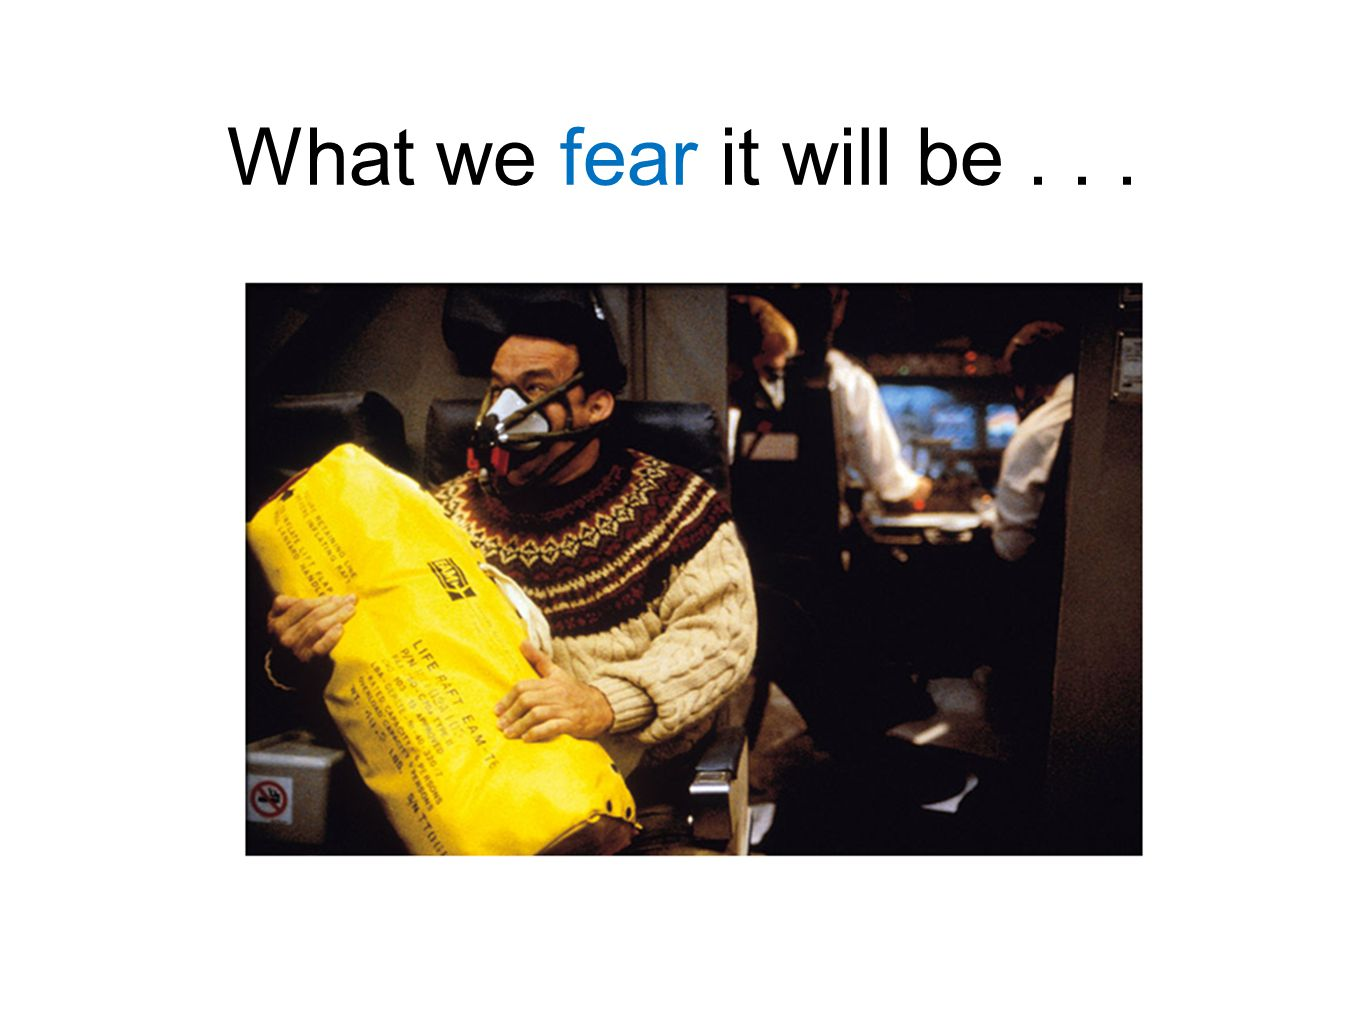 What we fear it will be...